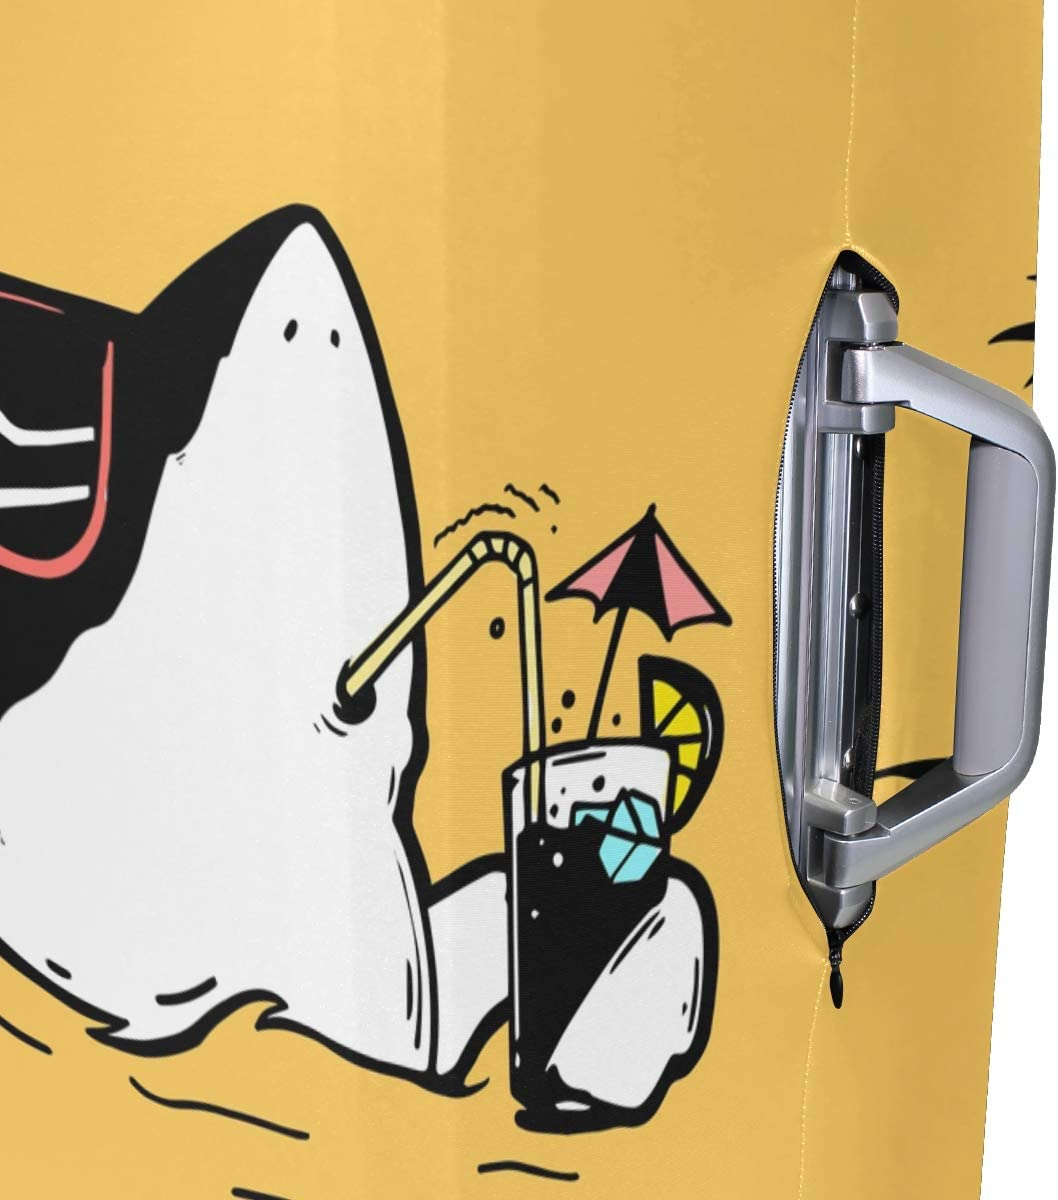 S 18//20//24//28//32 Inch Spandex Travel Luggage Cover Hawaii Shark Print Fashion Creative Design Anti-Scratch Stretchy Travel Suitcase Protector Baggage Covers